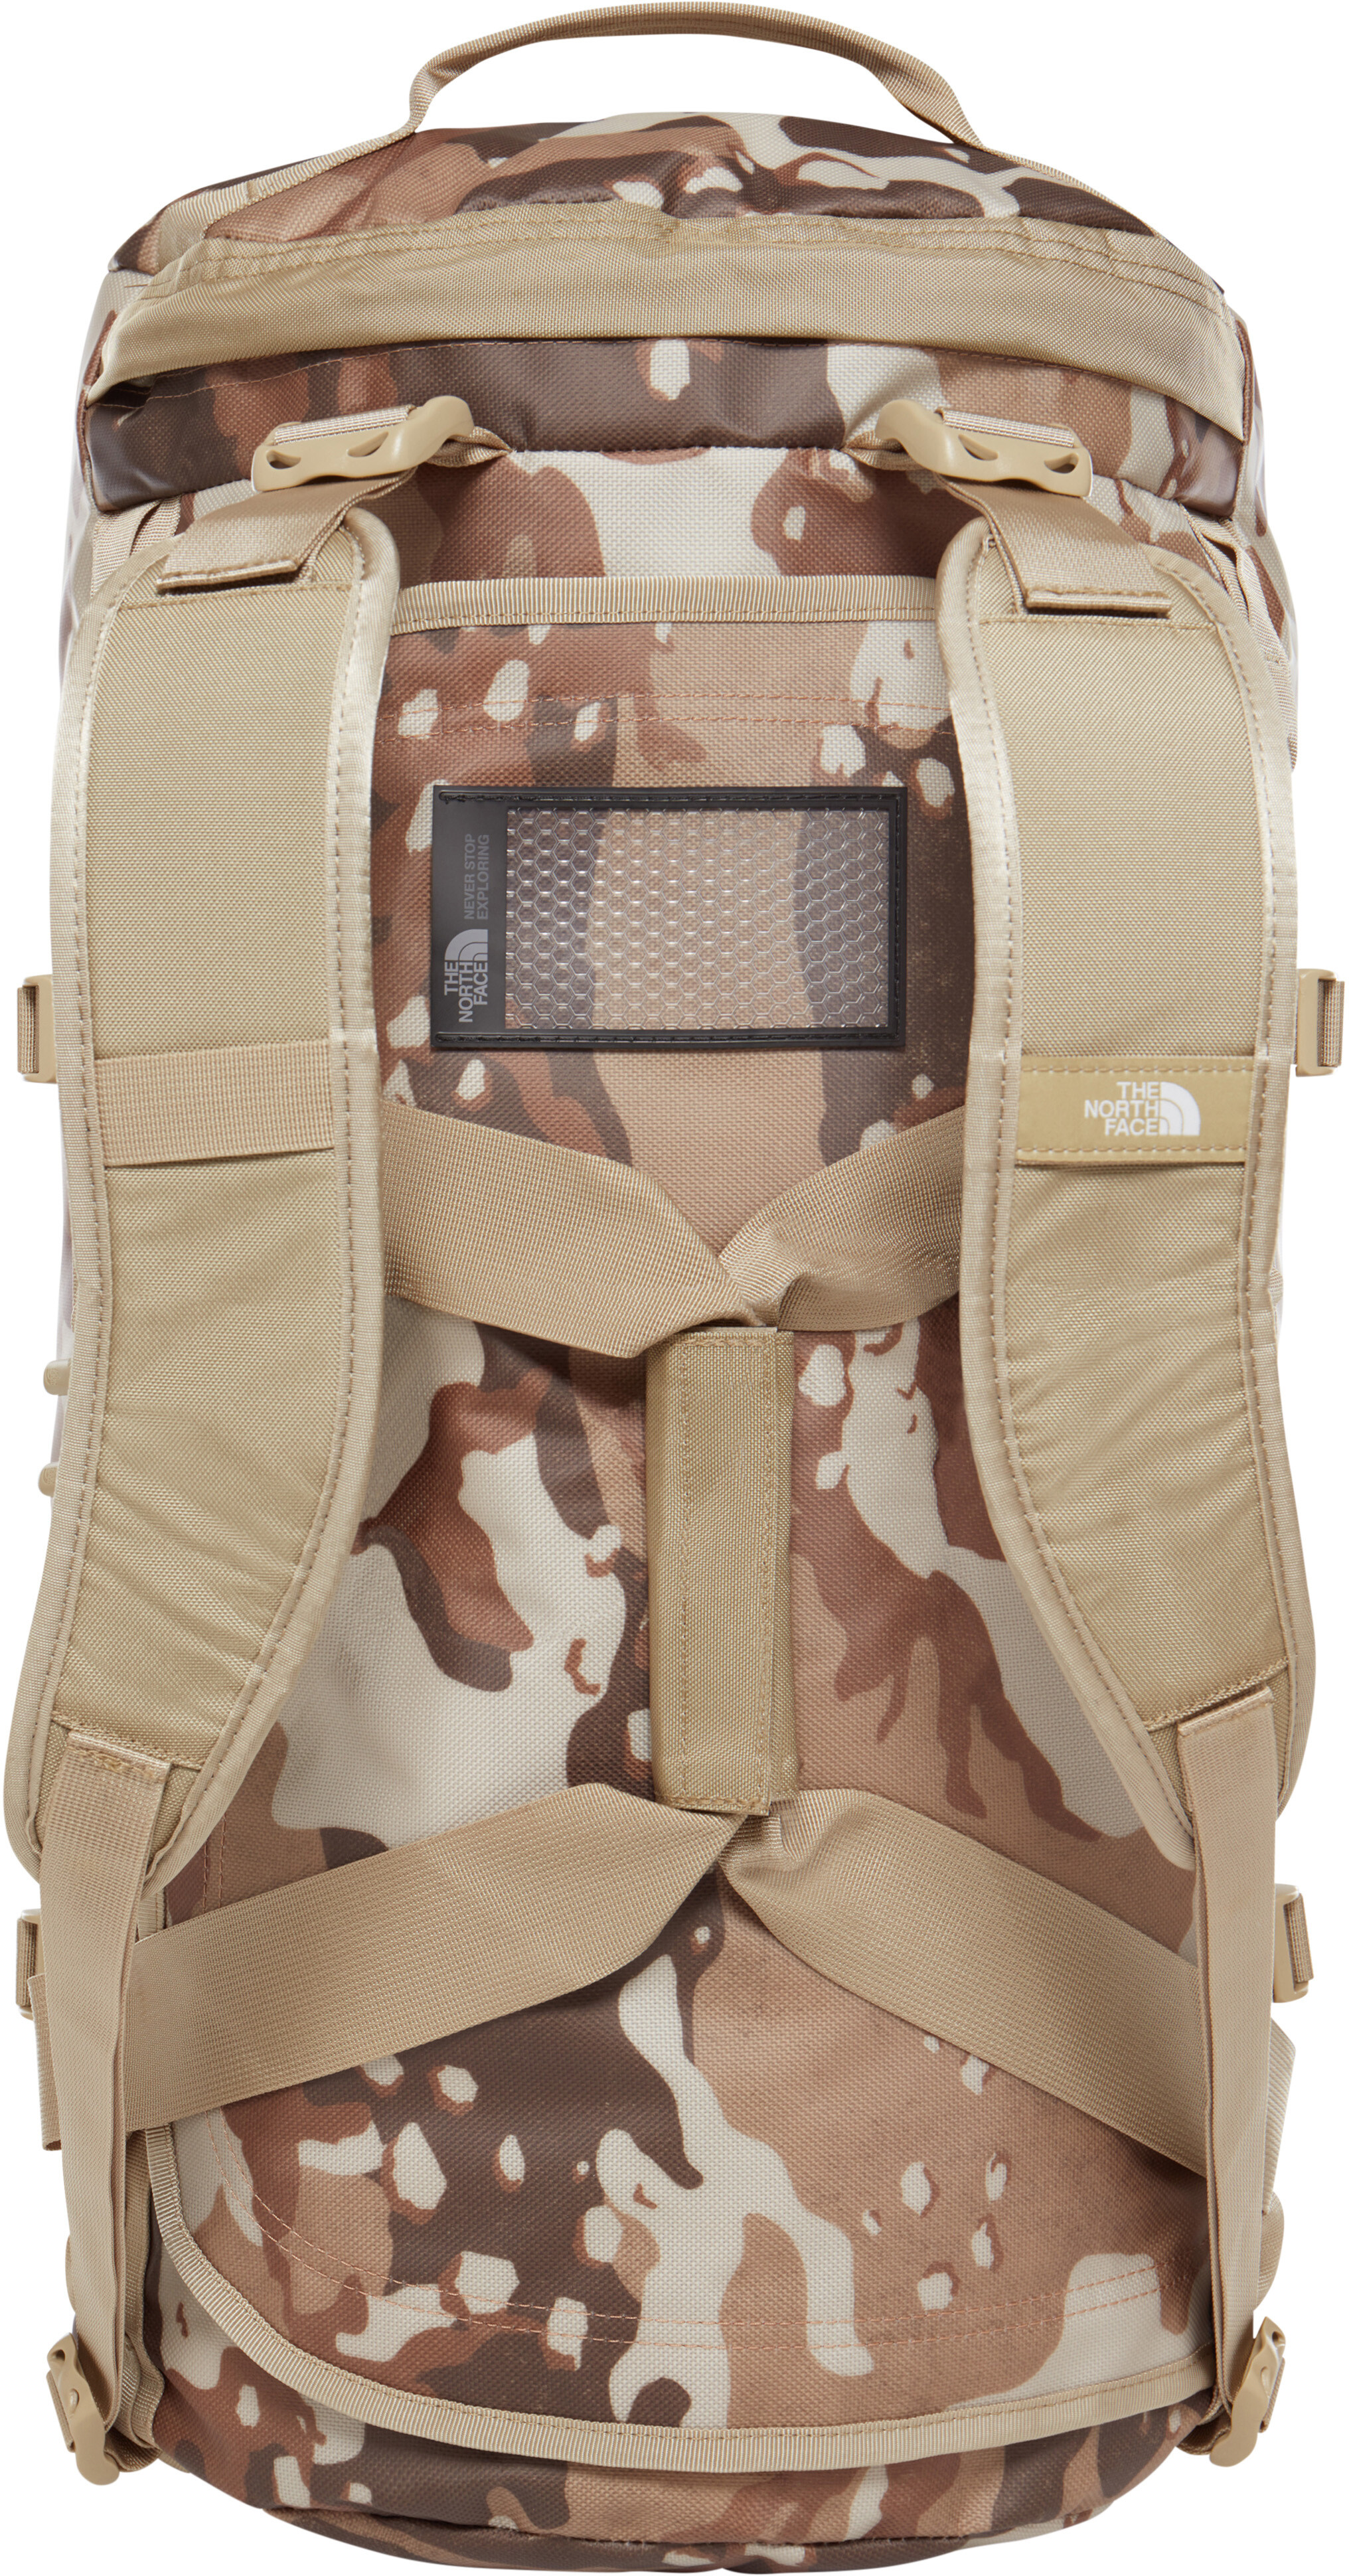 The North Face Base Camp Valigie M beige marrone su Addnature d6d8aaa1022b